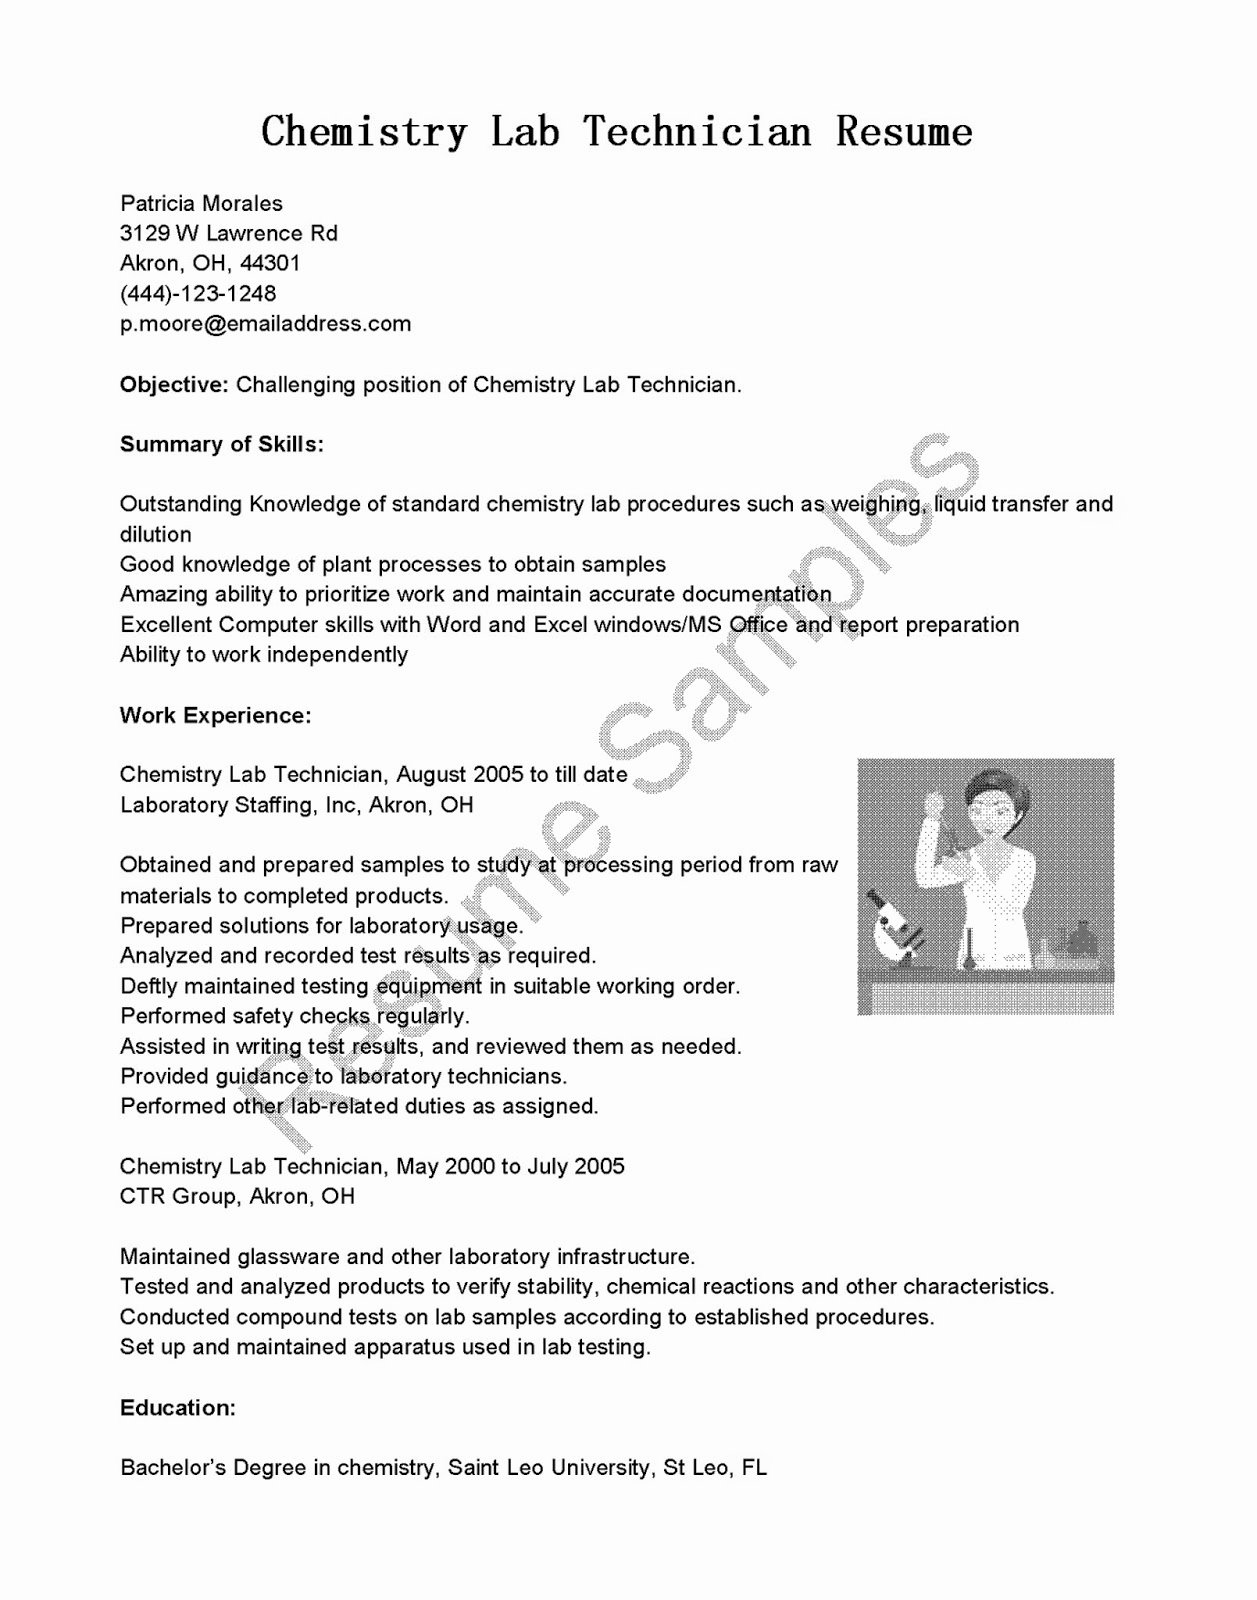 Resume for Laboratory Technician New Resume Samples Chemistry Lab Technician Resume Sample